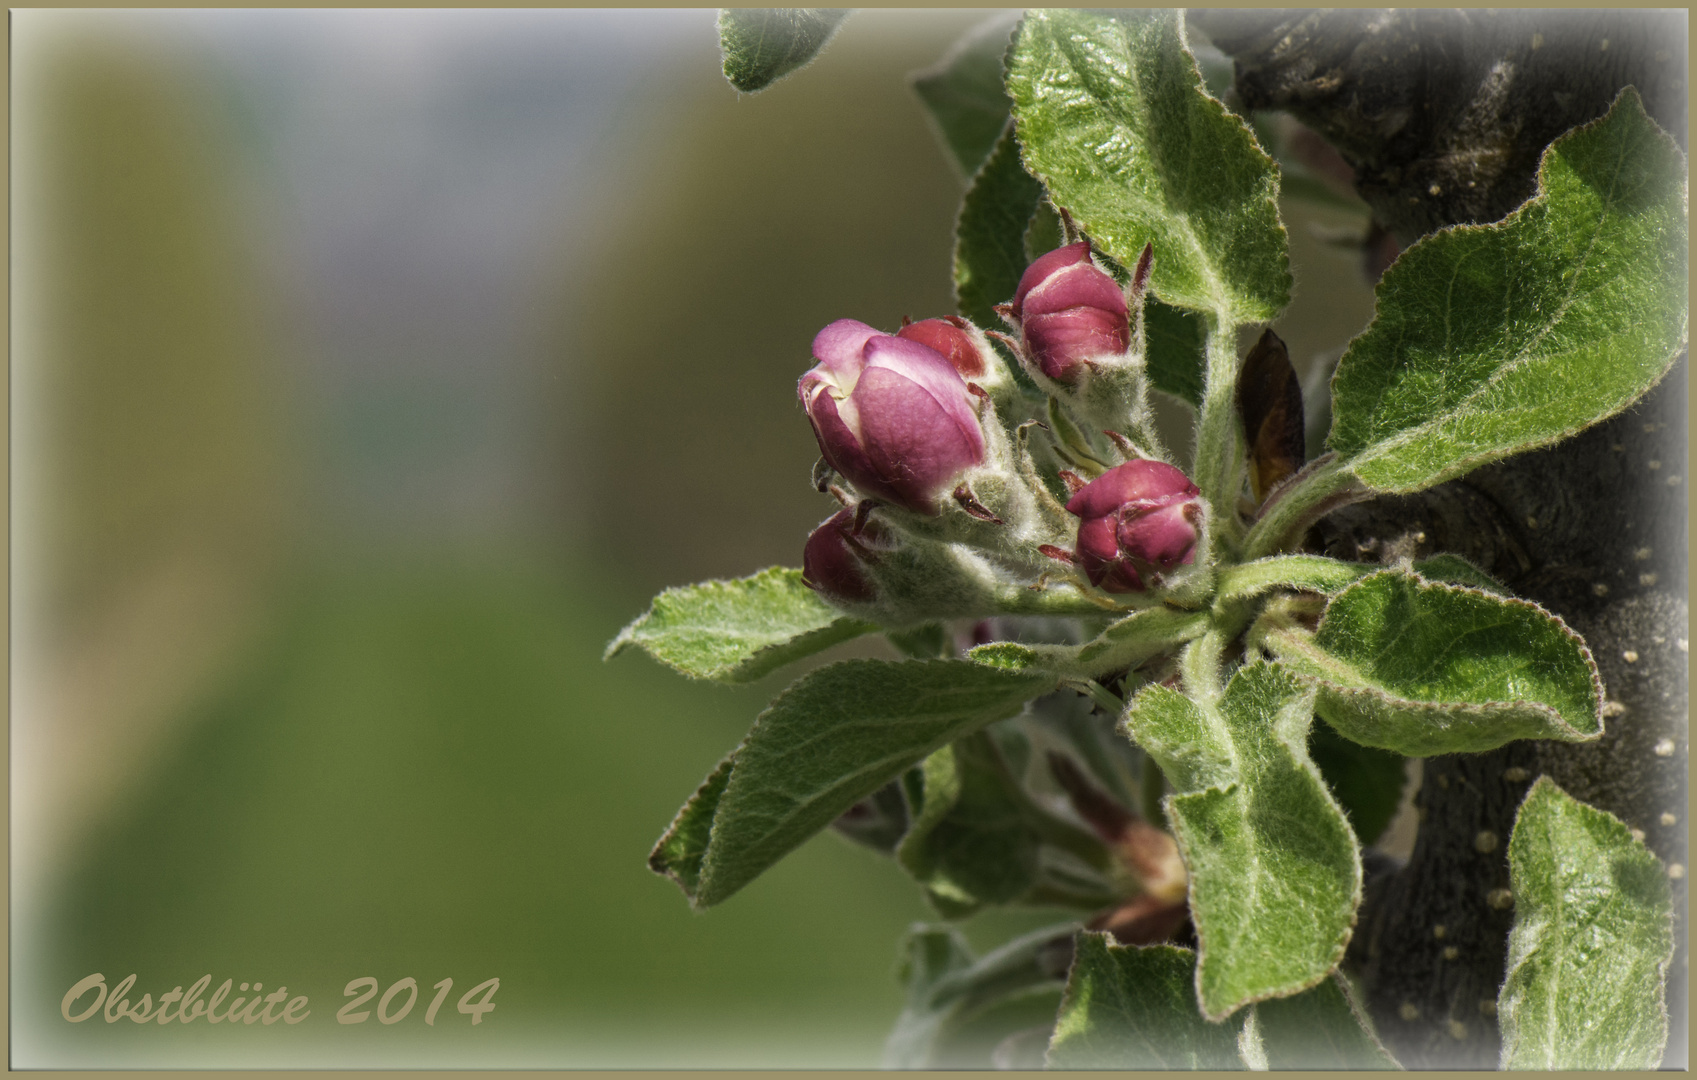 Obstblüte 2014